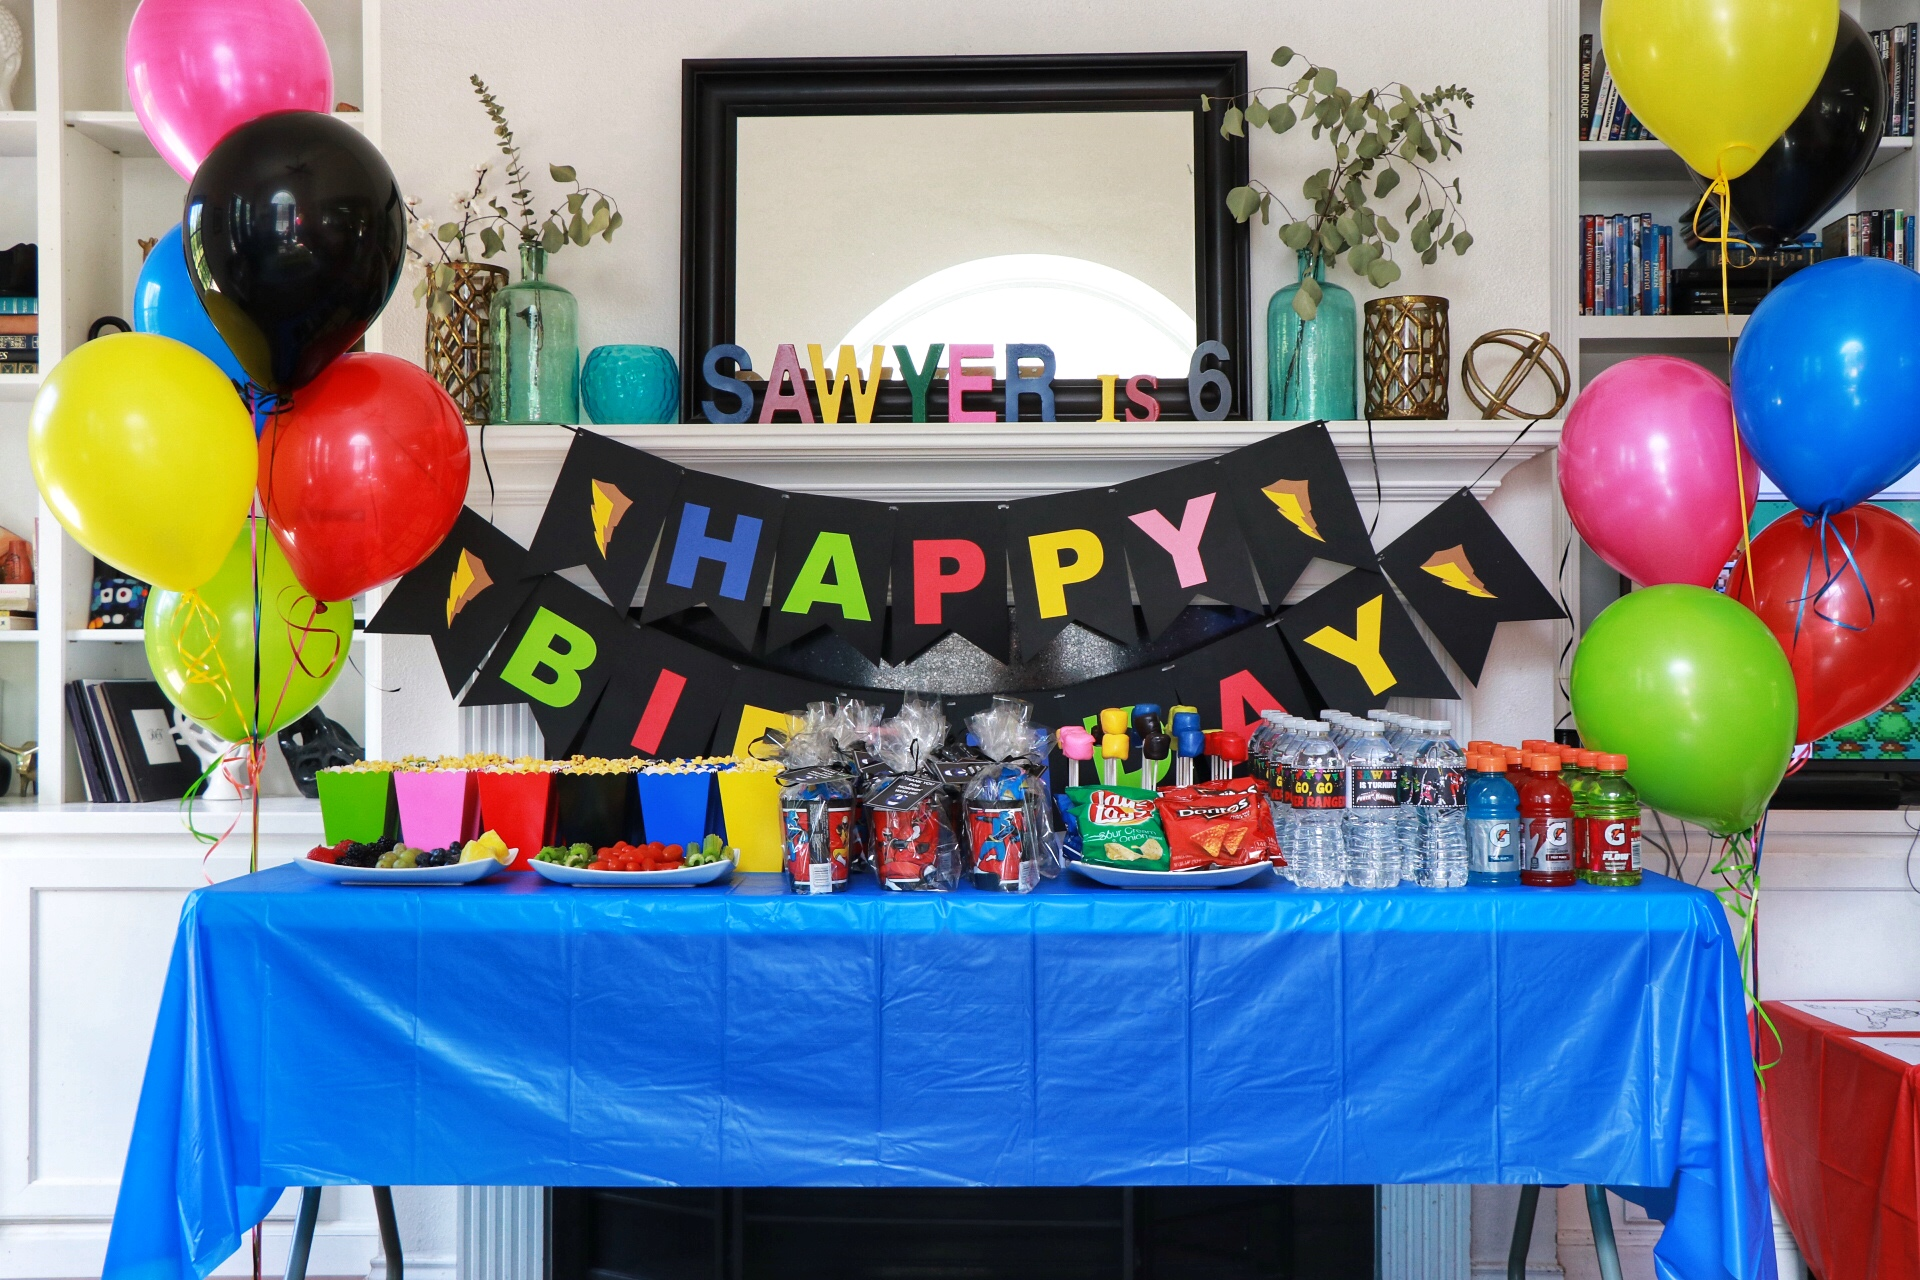 Go Go Power Rangers How To Throw A Mighty Morphin Power Rangers Themed Birthday Party Fab Everyday